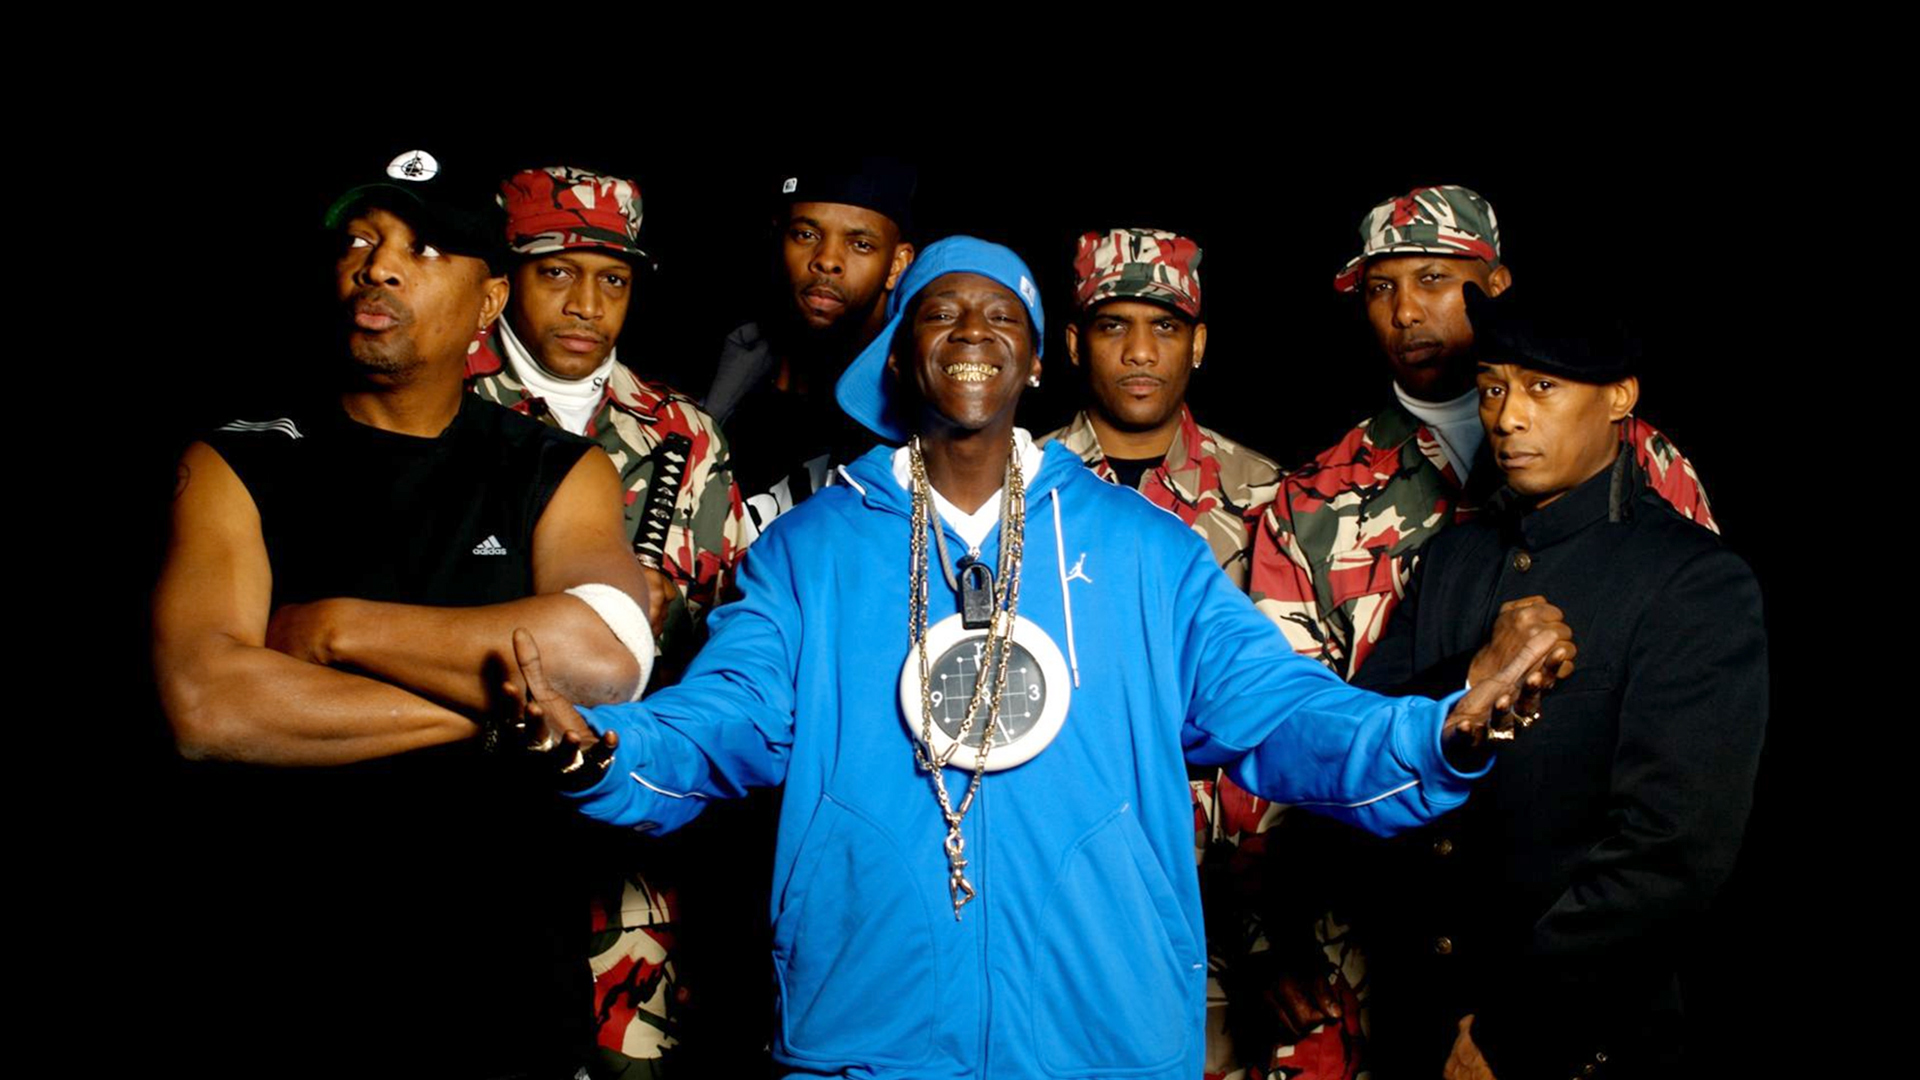 Black to the Music - Public Enemy gallery1